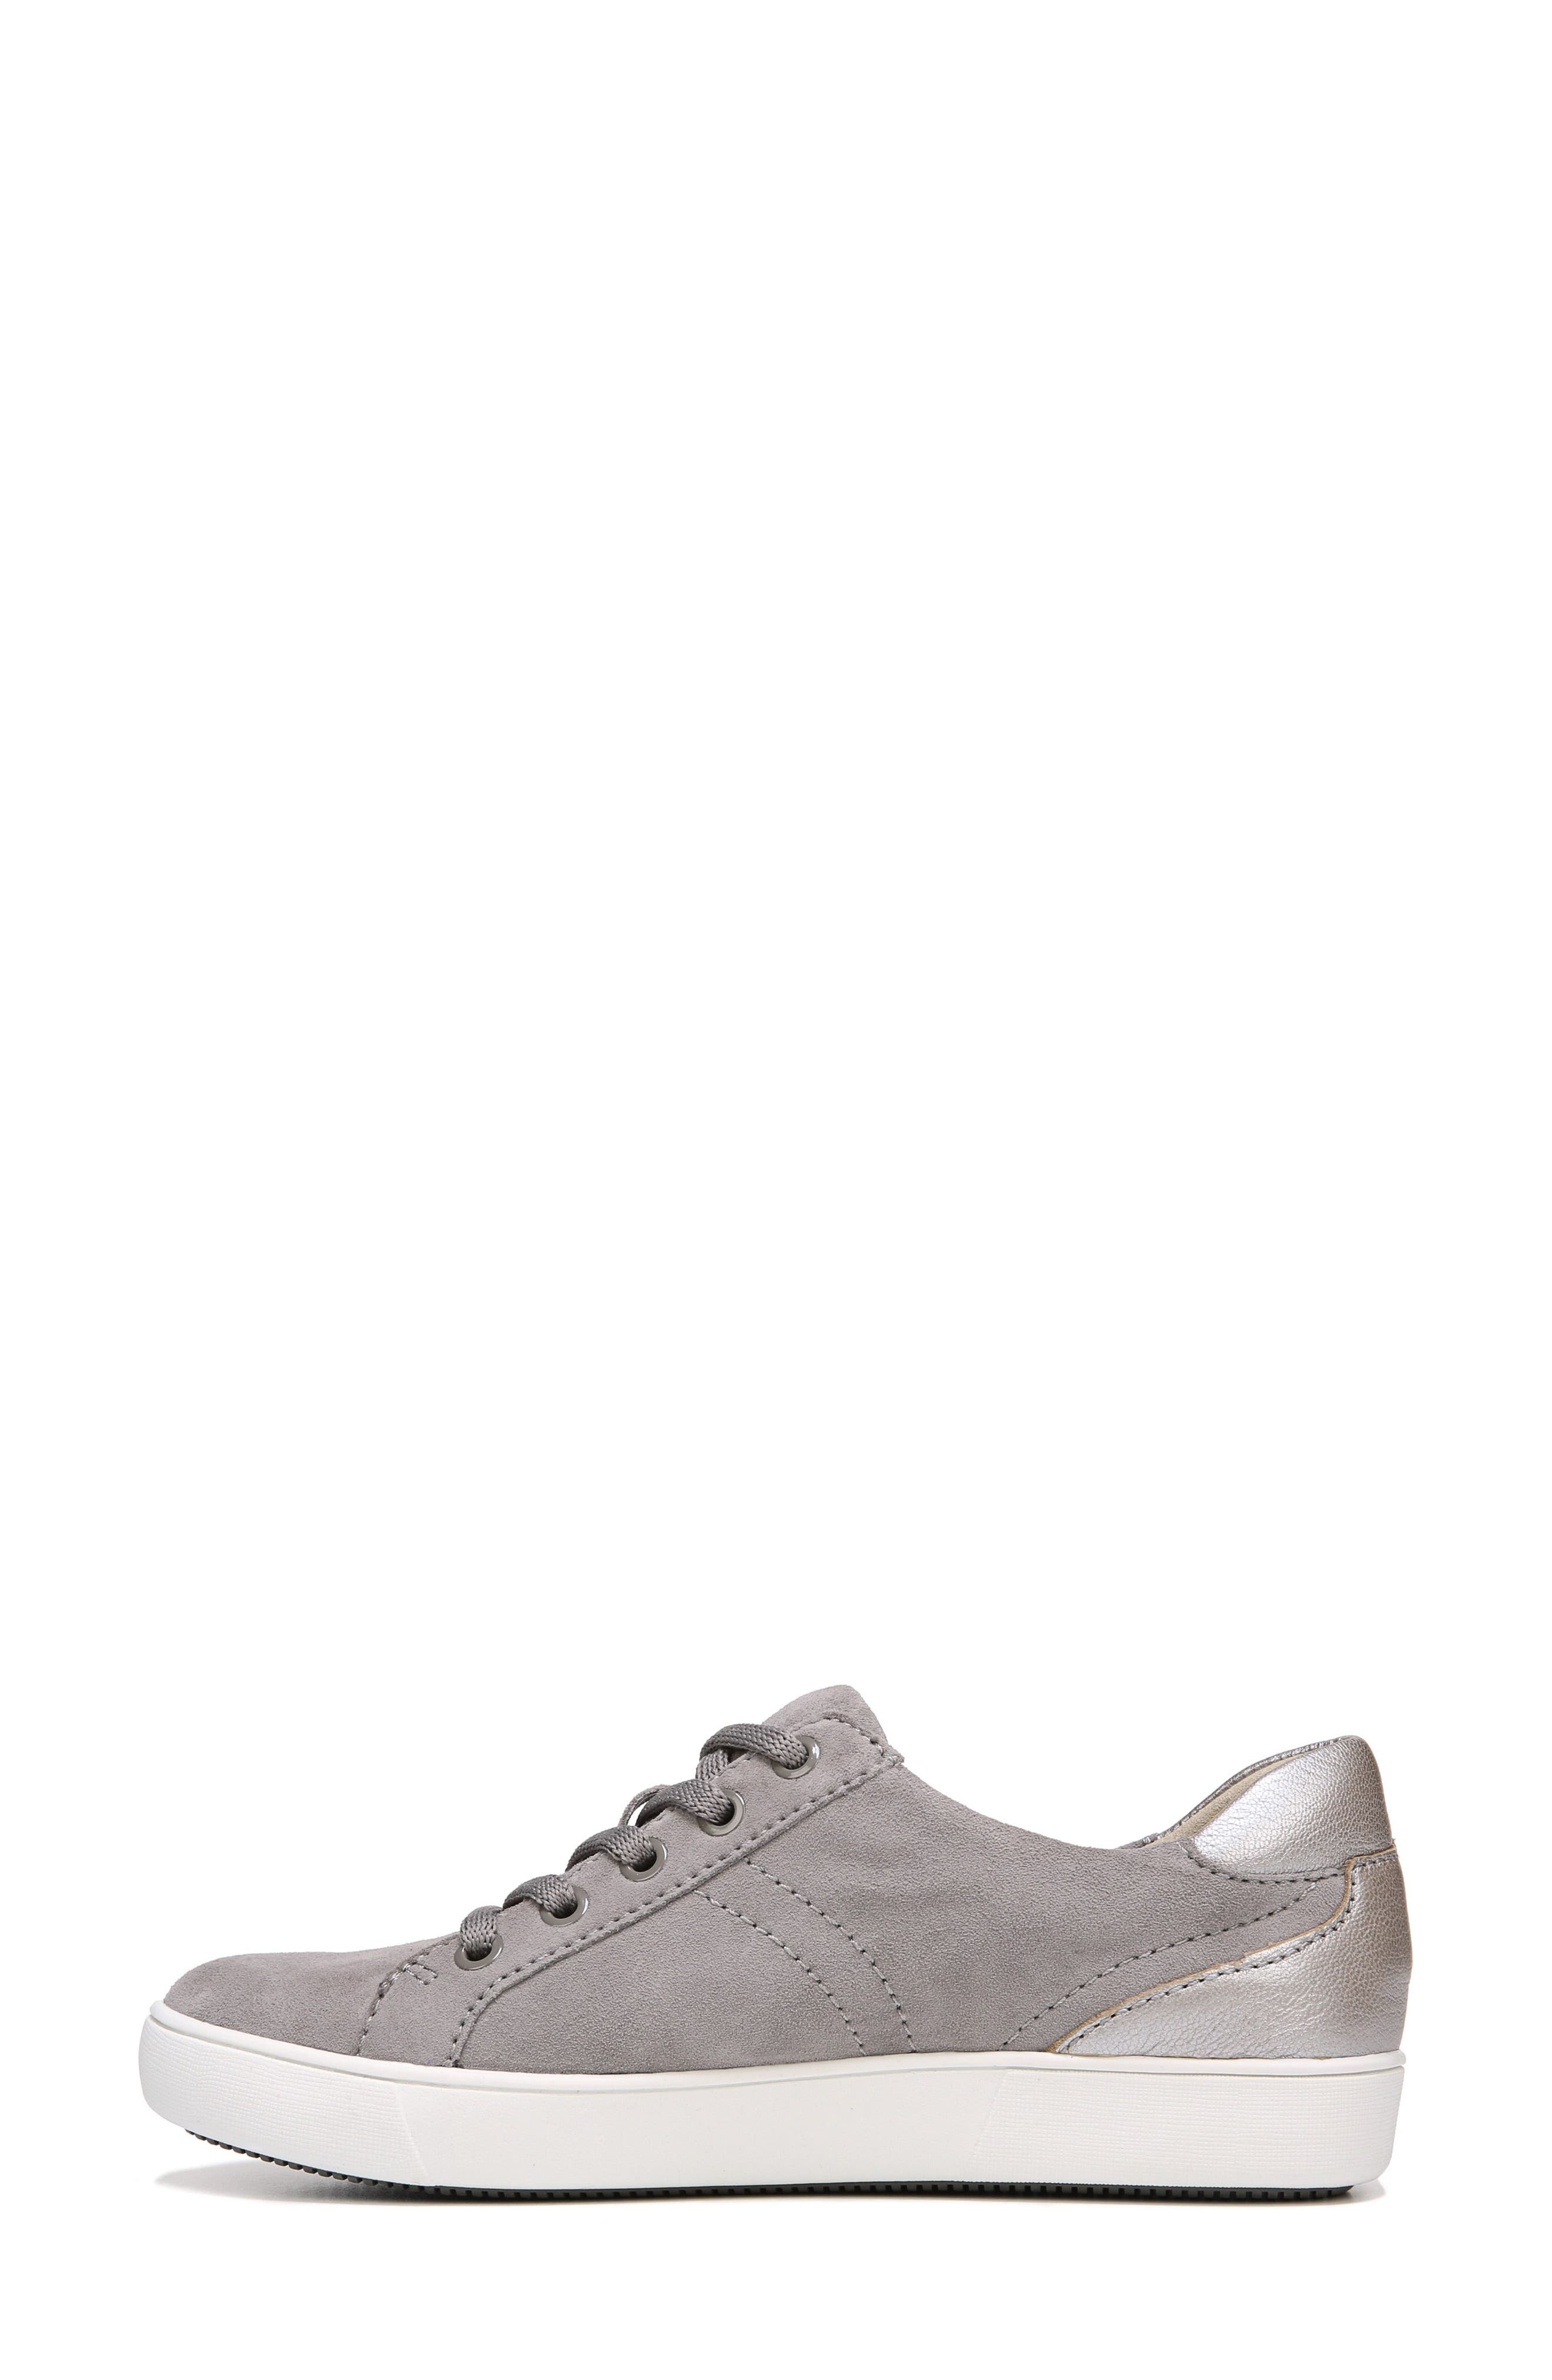 NATURALIZER,                             Morrison Sneaker,                             Alternate thumbnail 3, color,                             GREY SUEDE